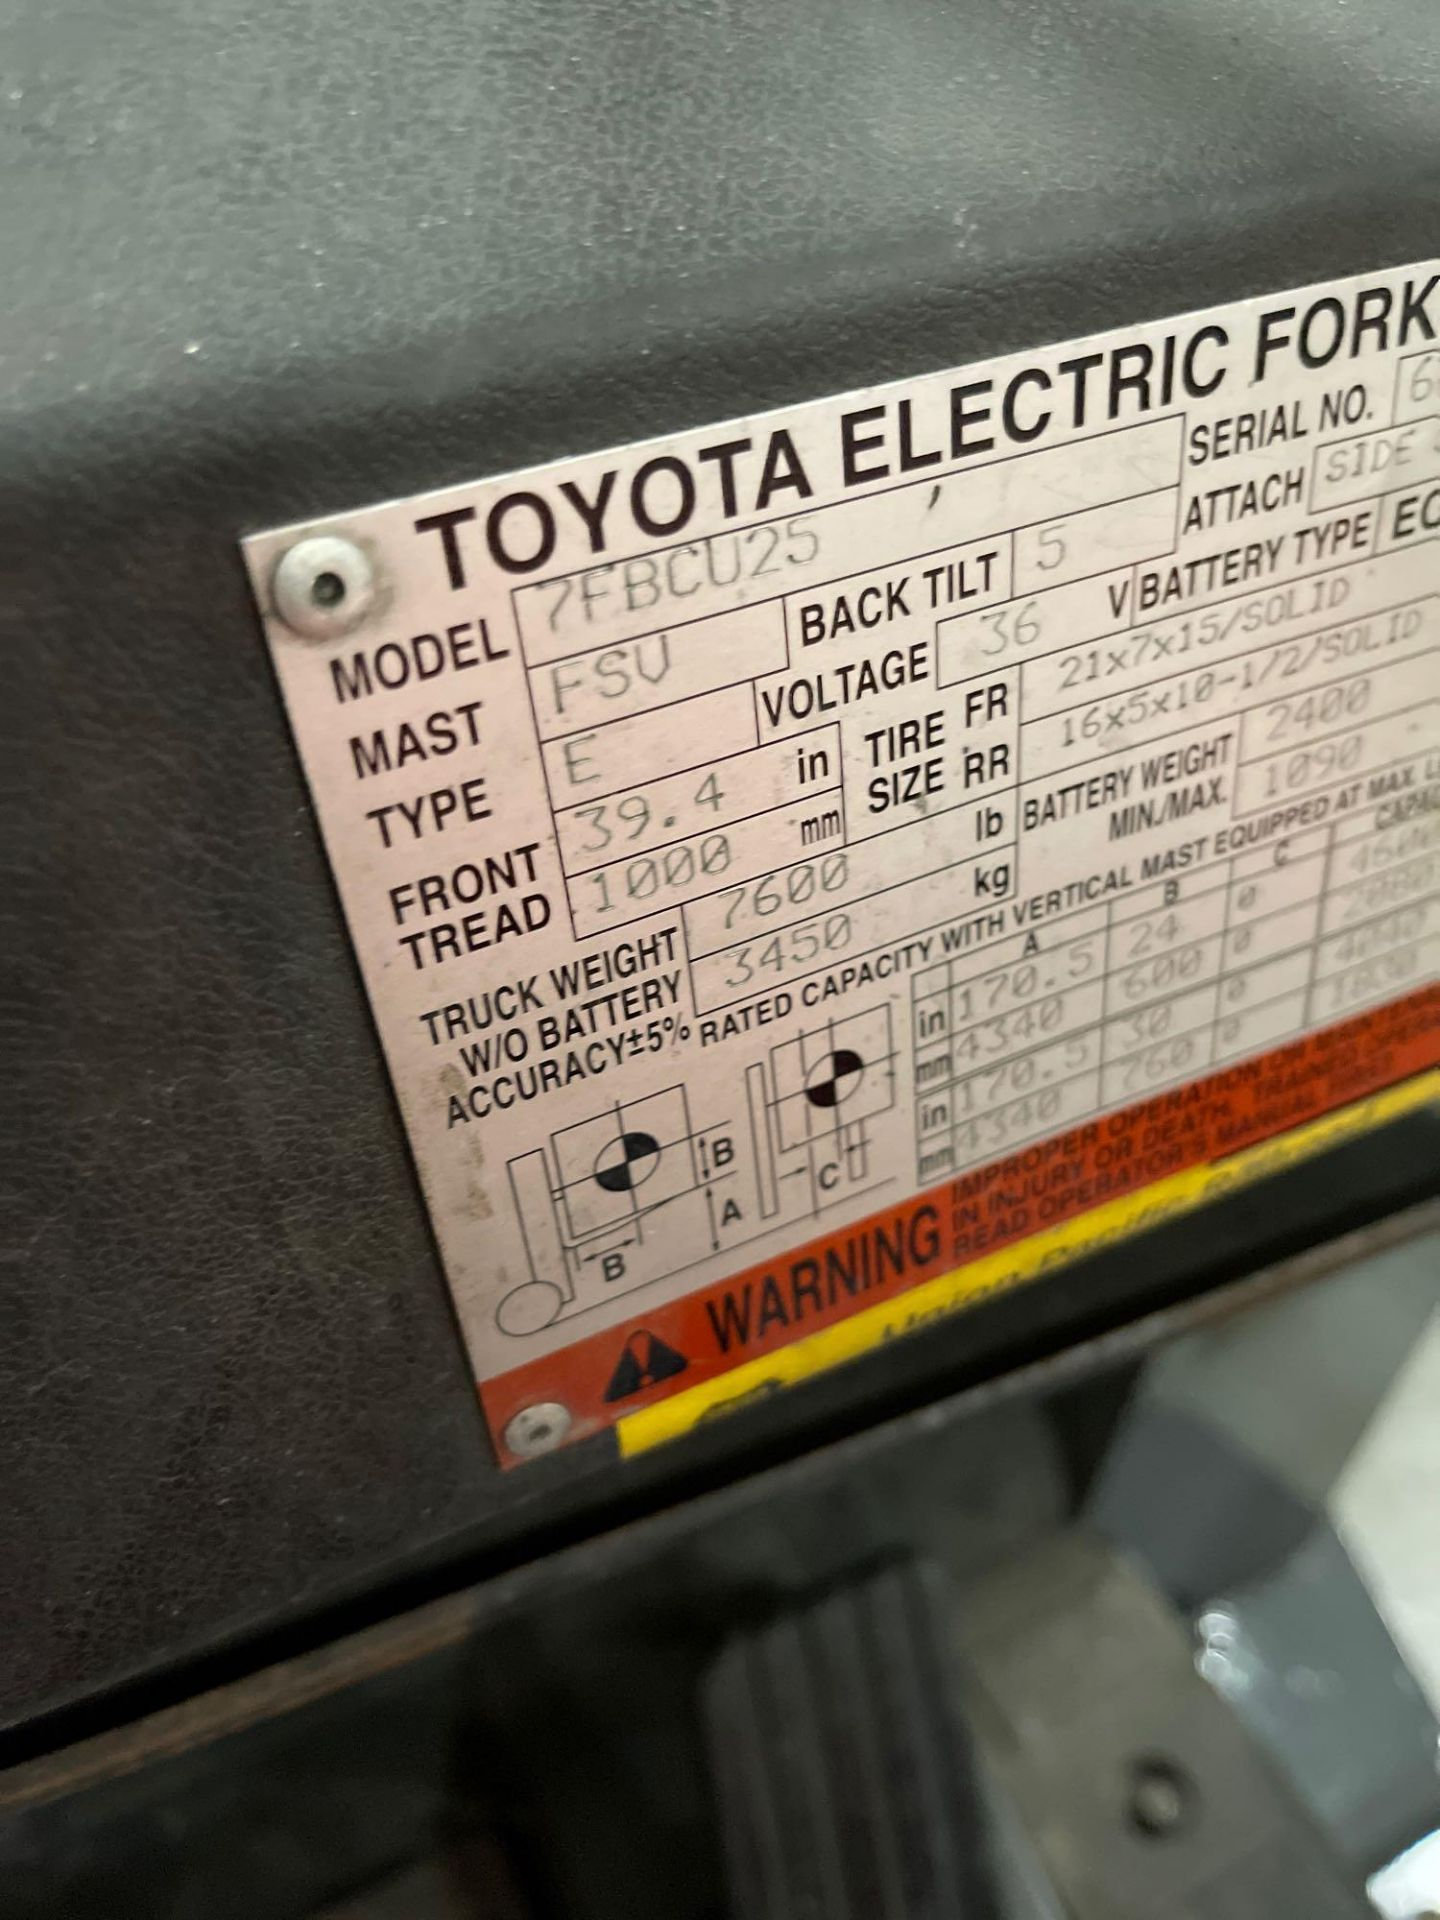 """TOYOTA 7FBCU25 ELECTRIC FORKLIFT, 5,000 LB CAPACITY, 170.5"""" HEIGHT CAPACITY, TILT, SIDE SHIFT - Image 12 of 16"""